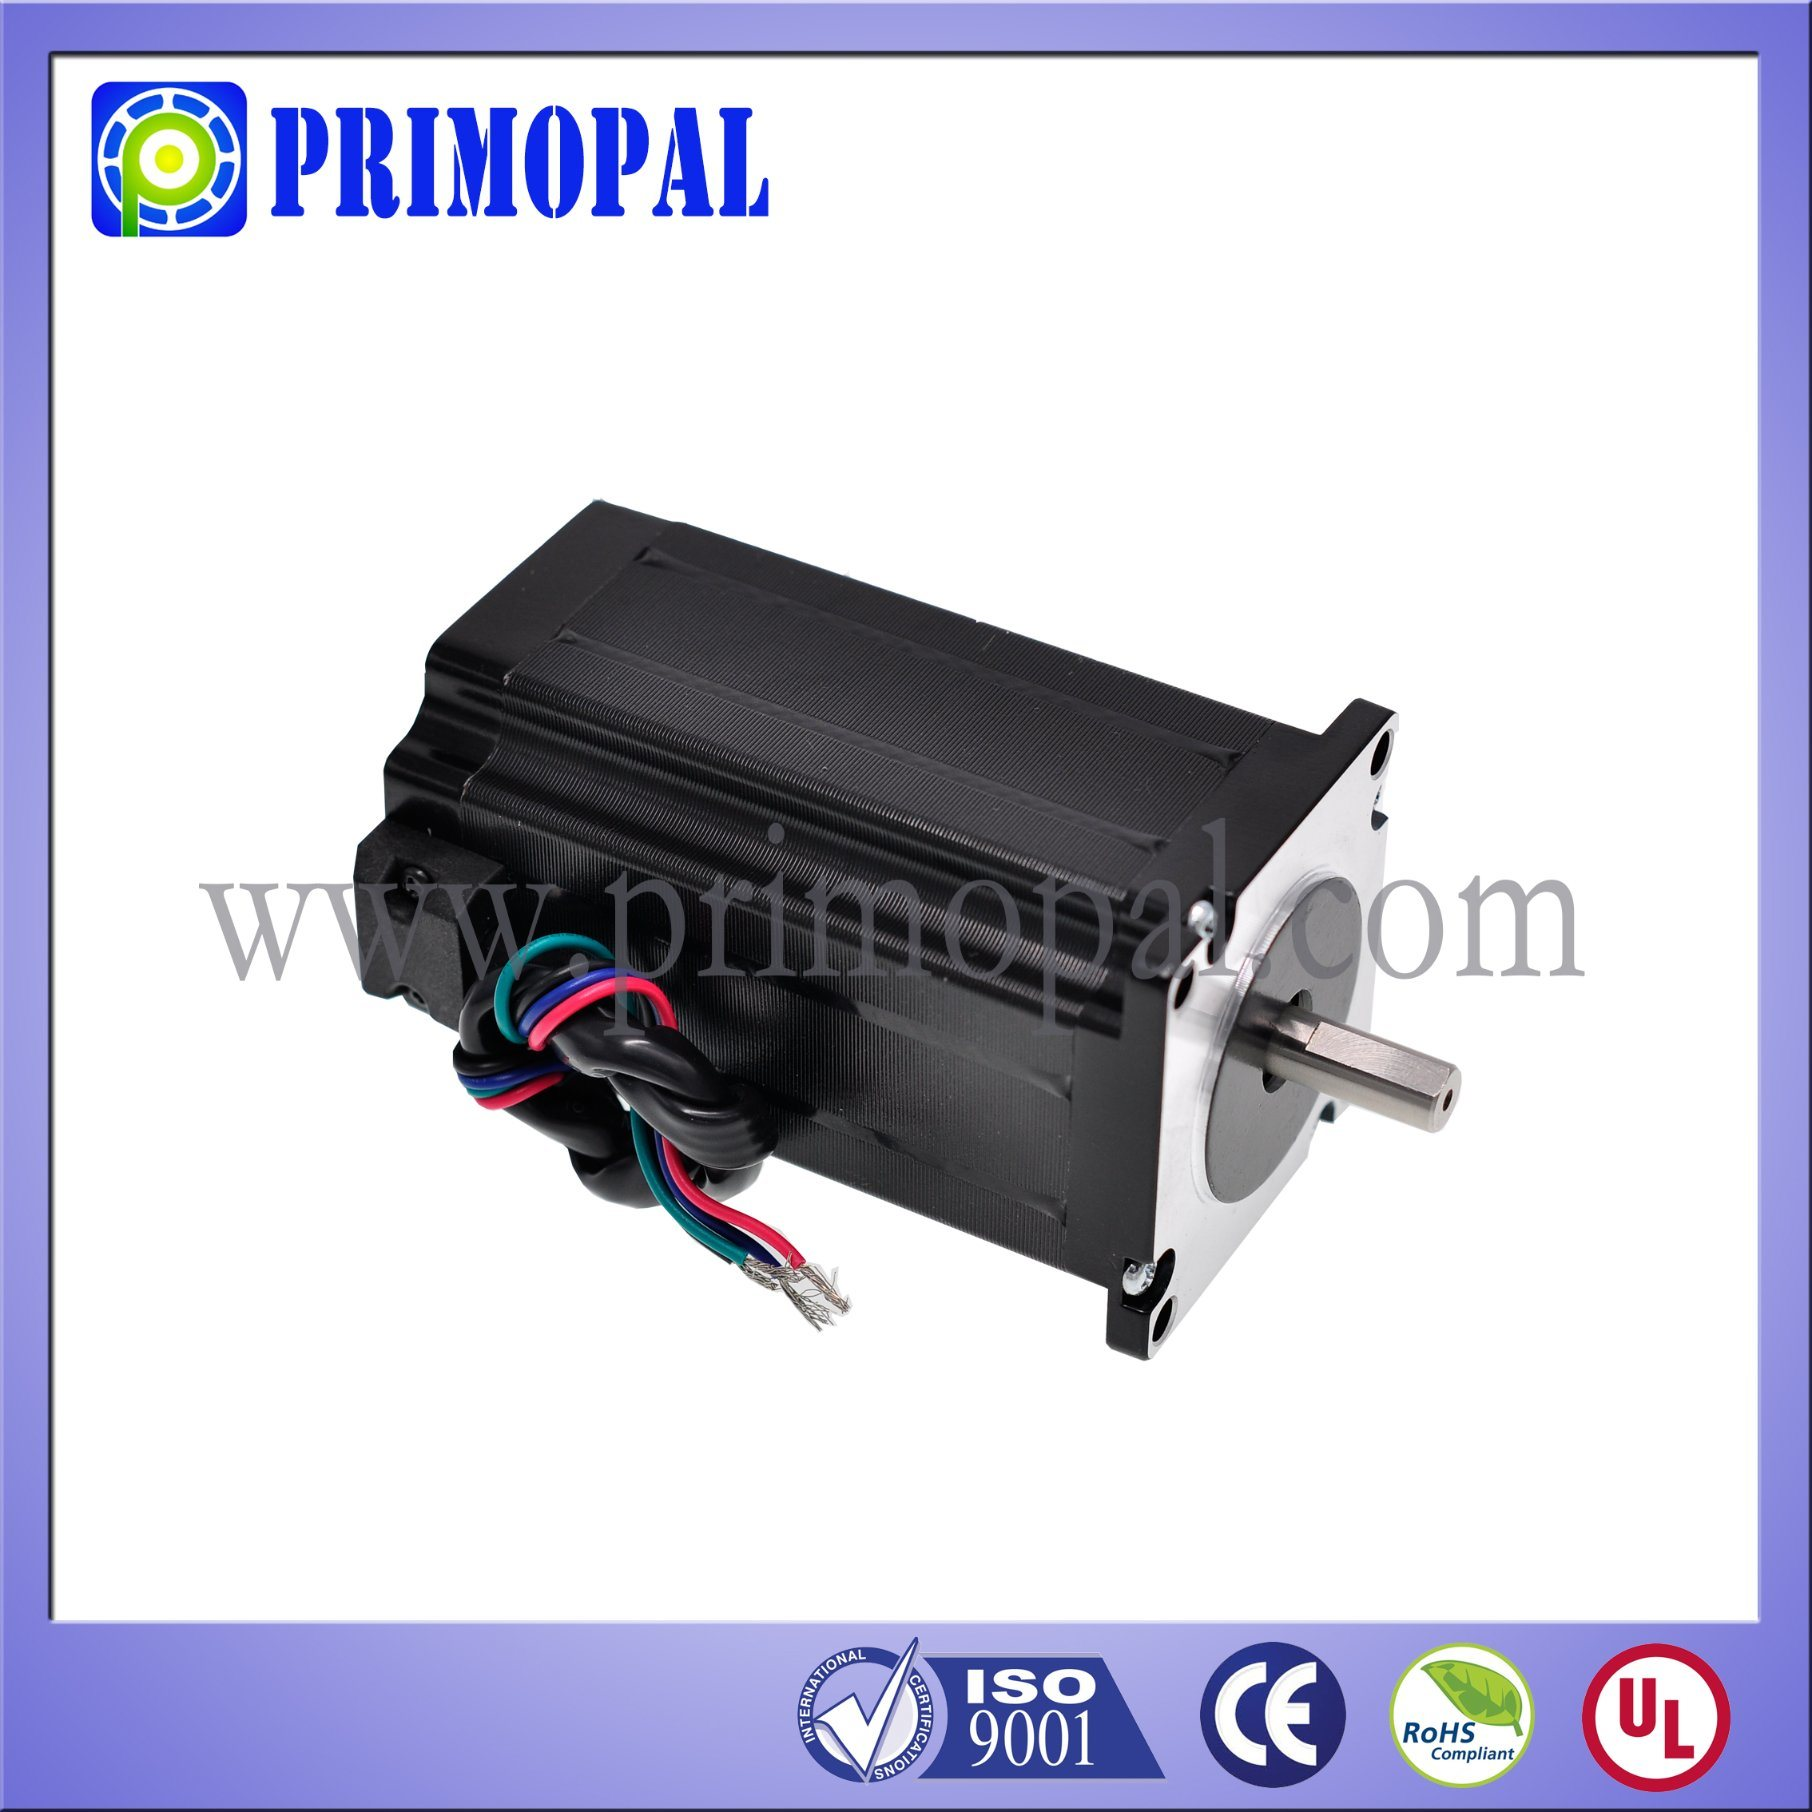 1.8 Degree NEMA 23 Stepper Motor for CNC Applications